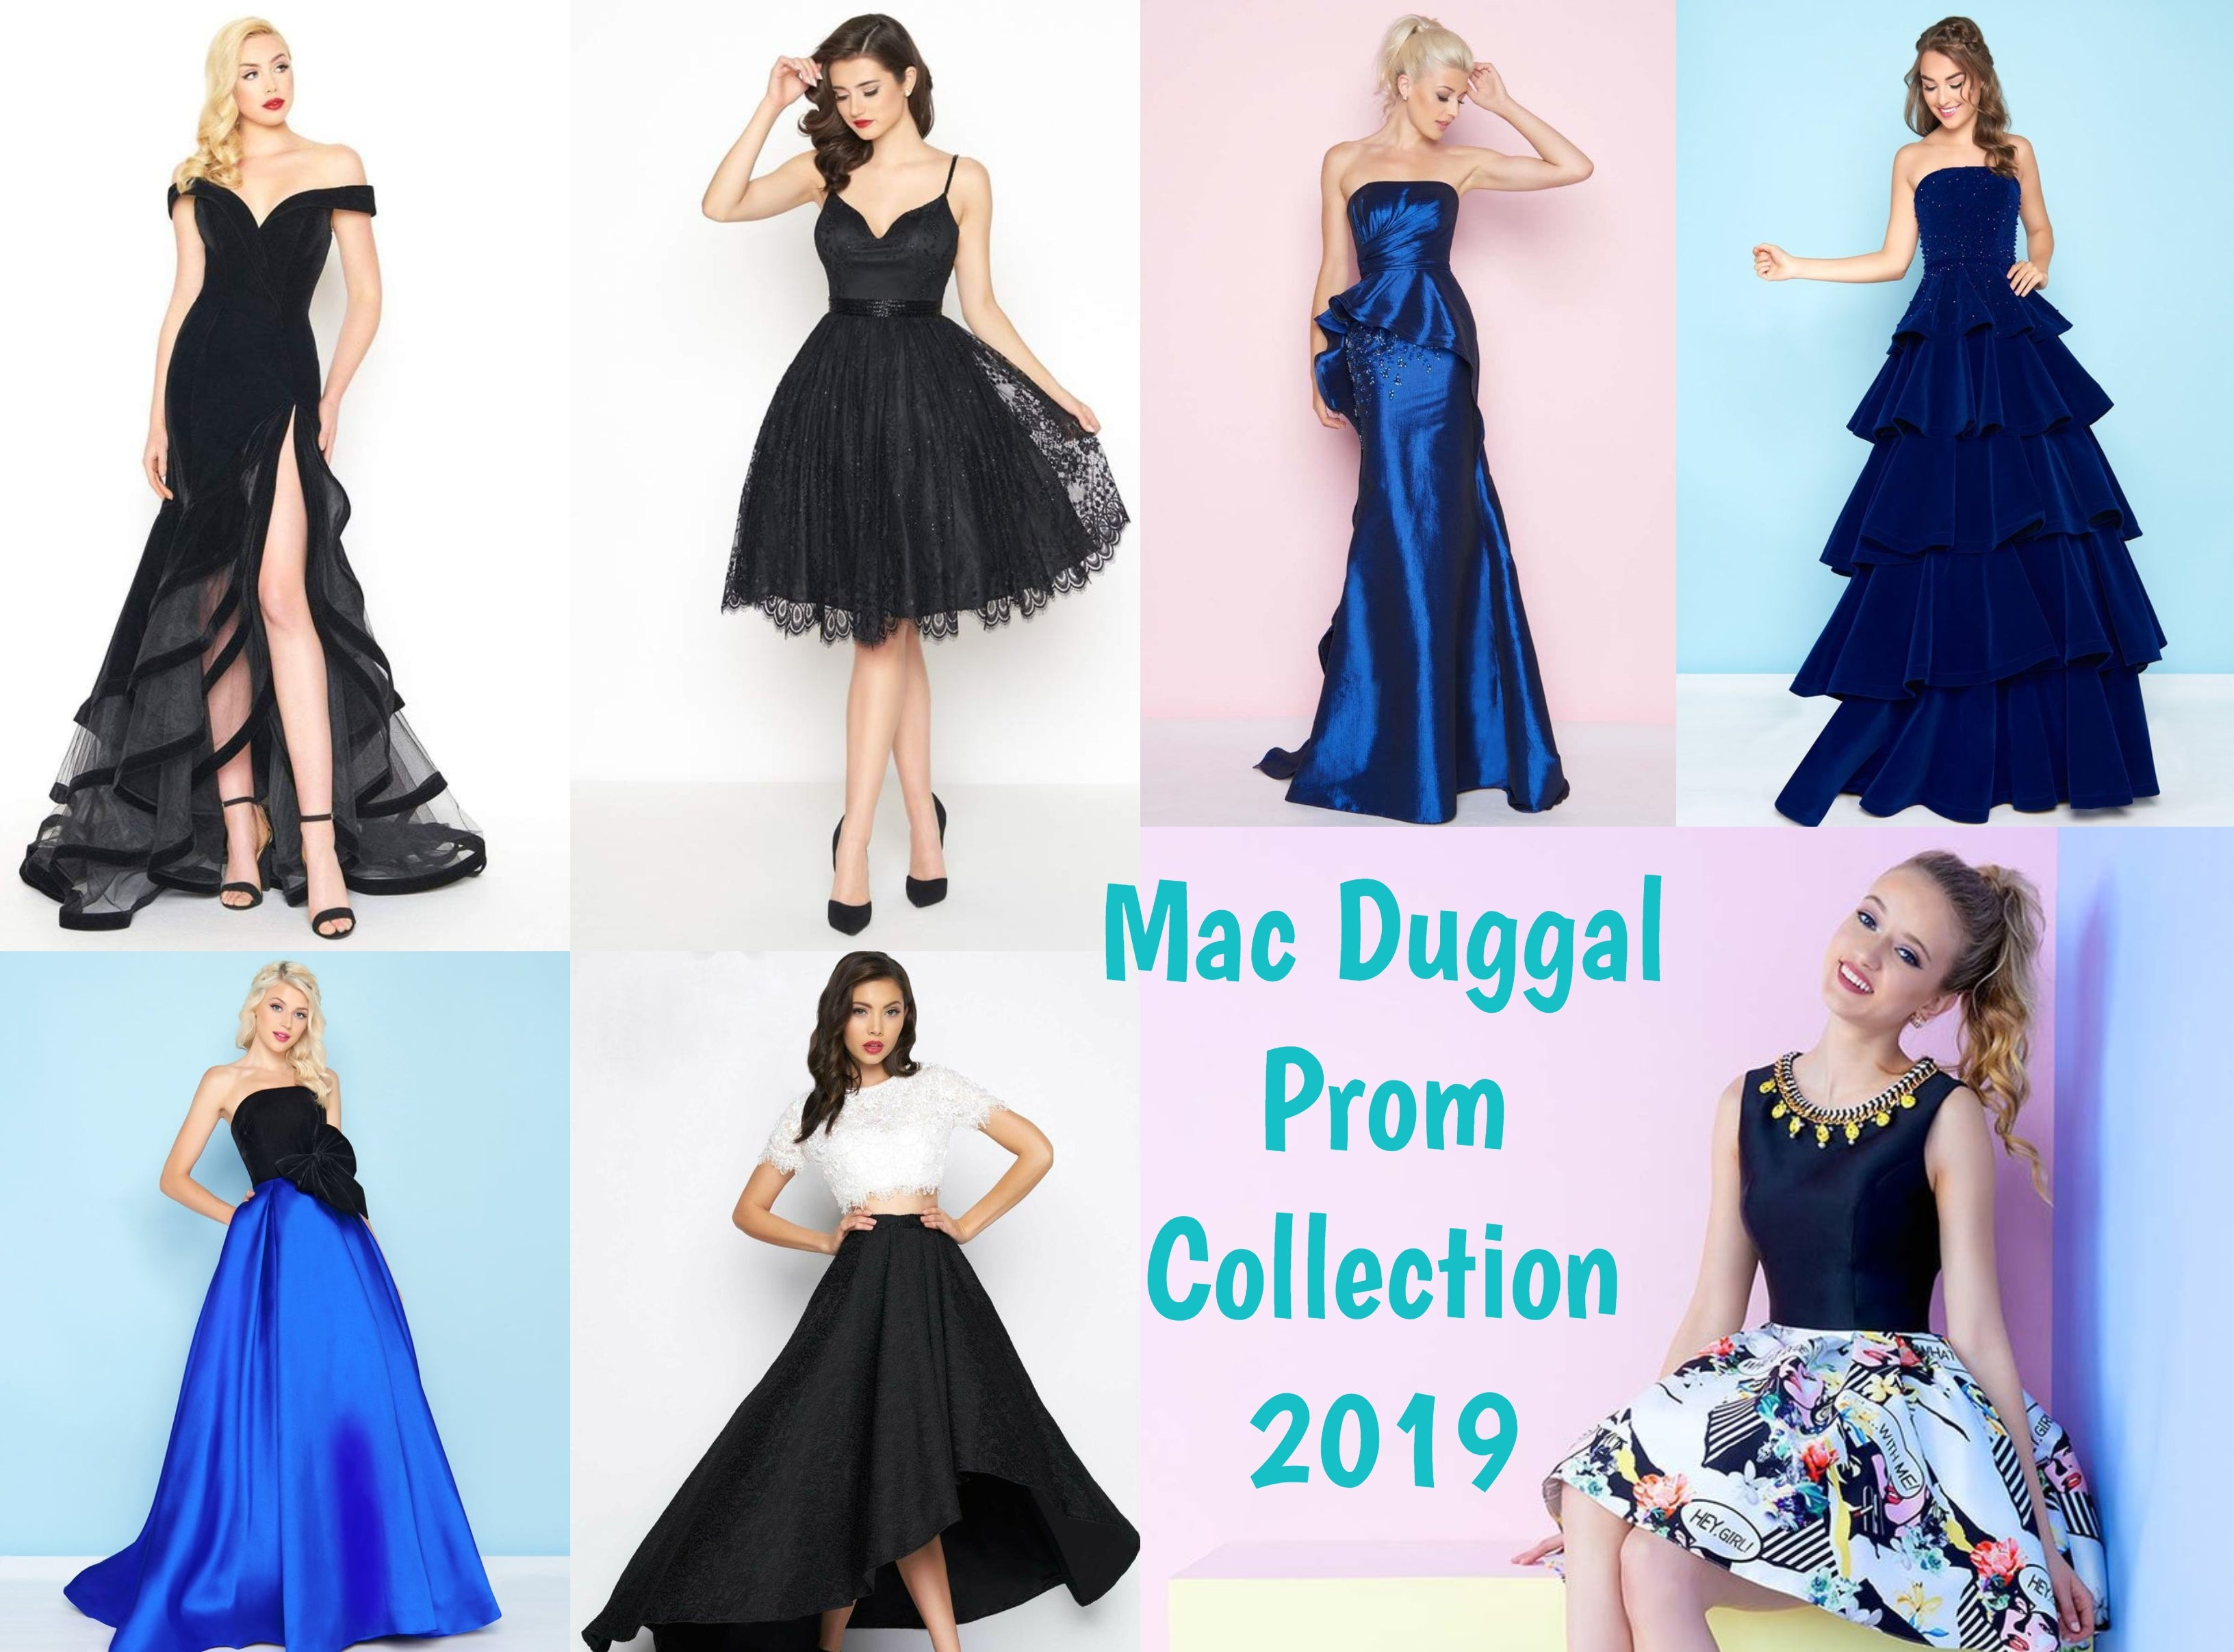 Dazzle Wherever You Go in Mac Duggal Dresses for Prom & Special Occasions